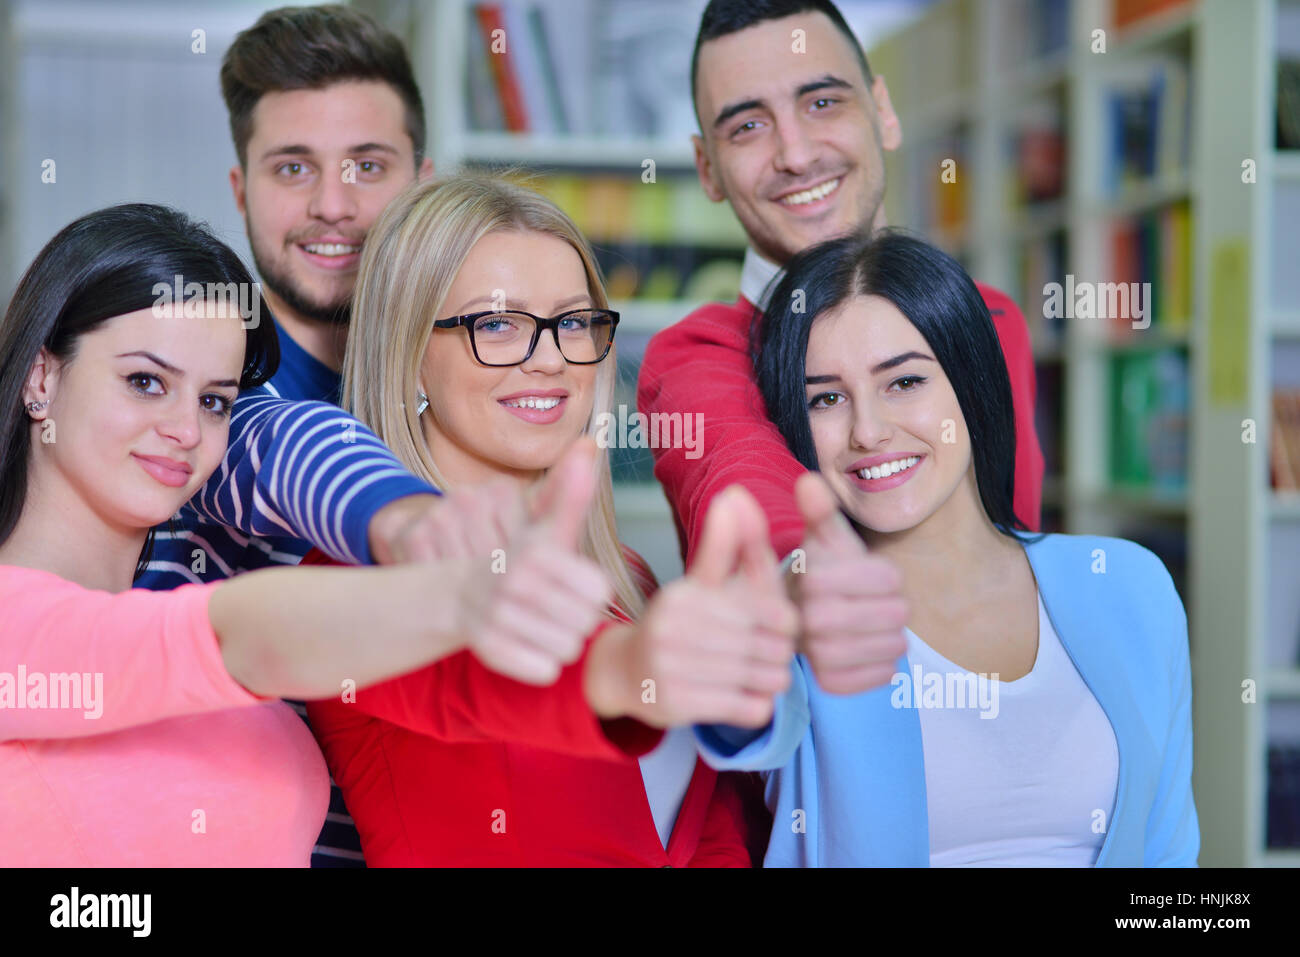 Cheerful group of students smiling at camera with thumbs up, success and learning concept - Stock Image